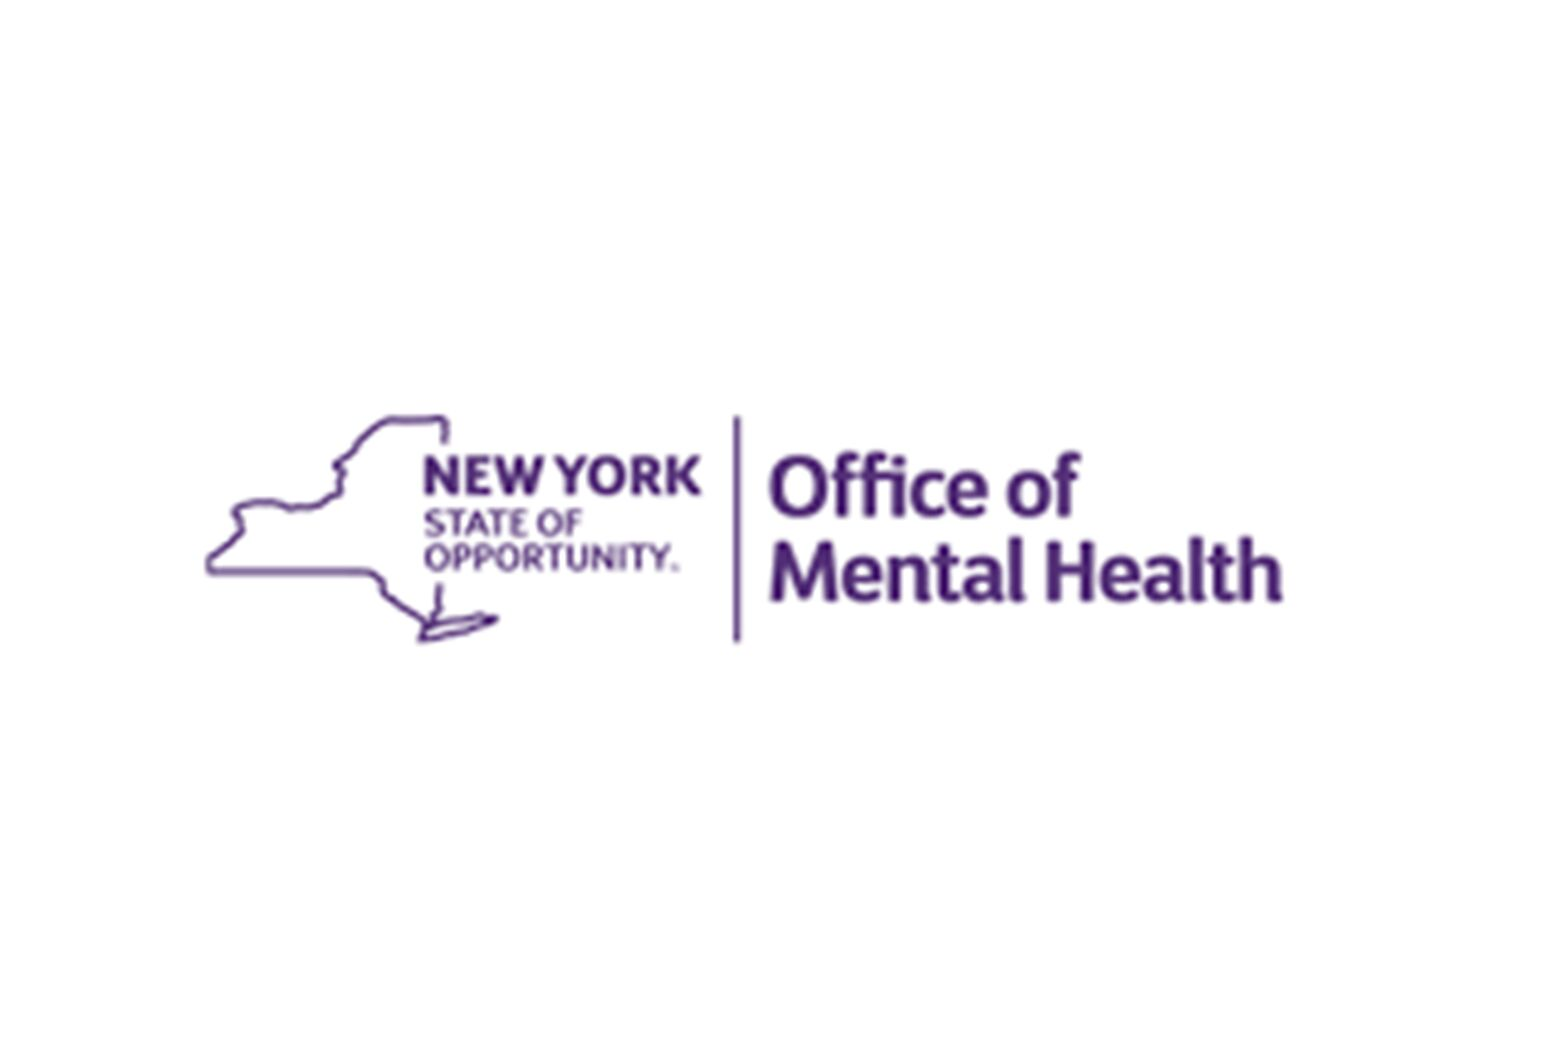 NY State Office Mental Health